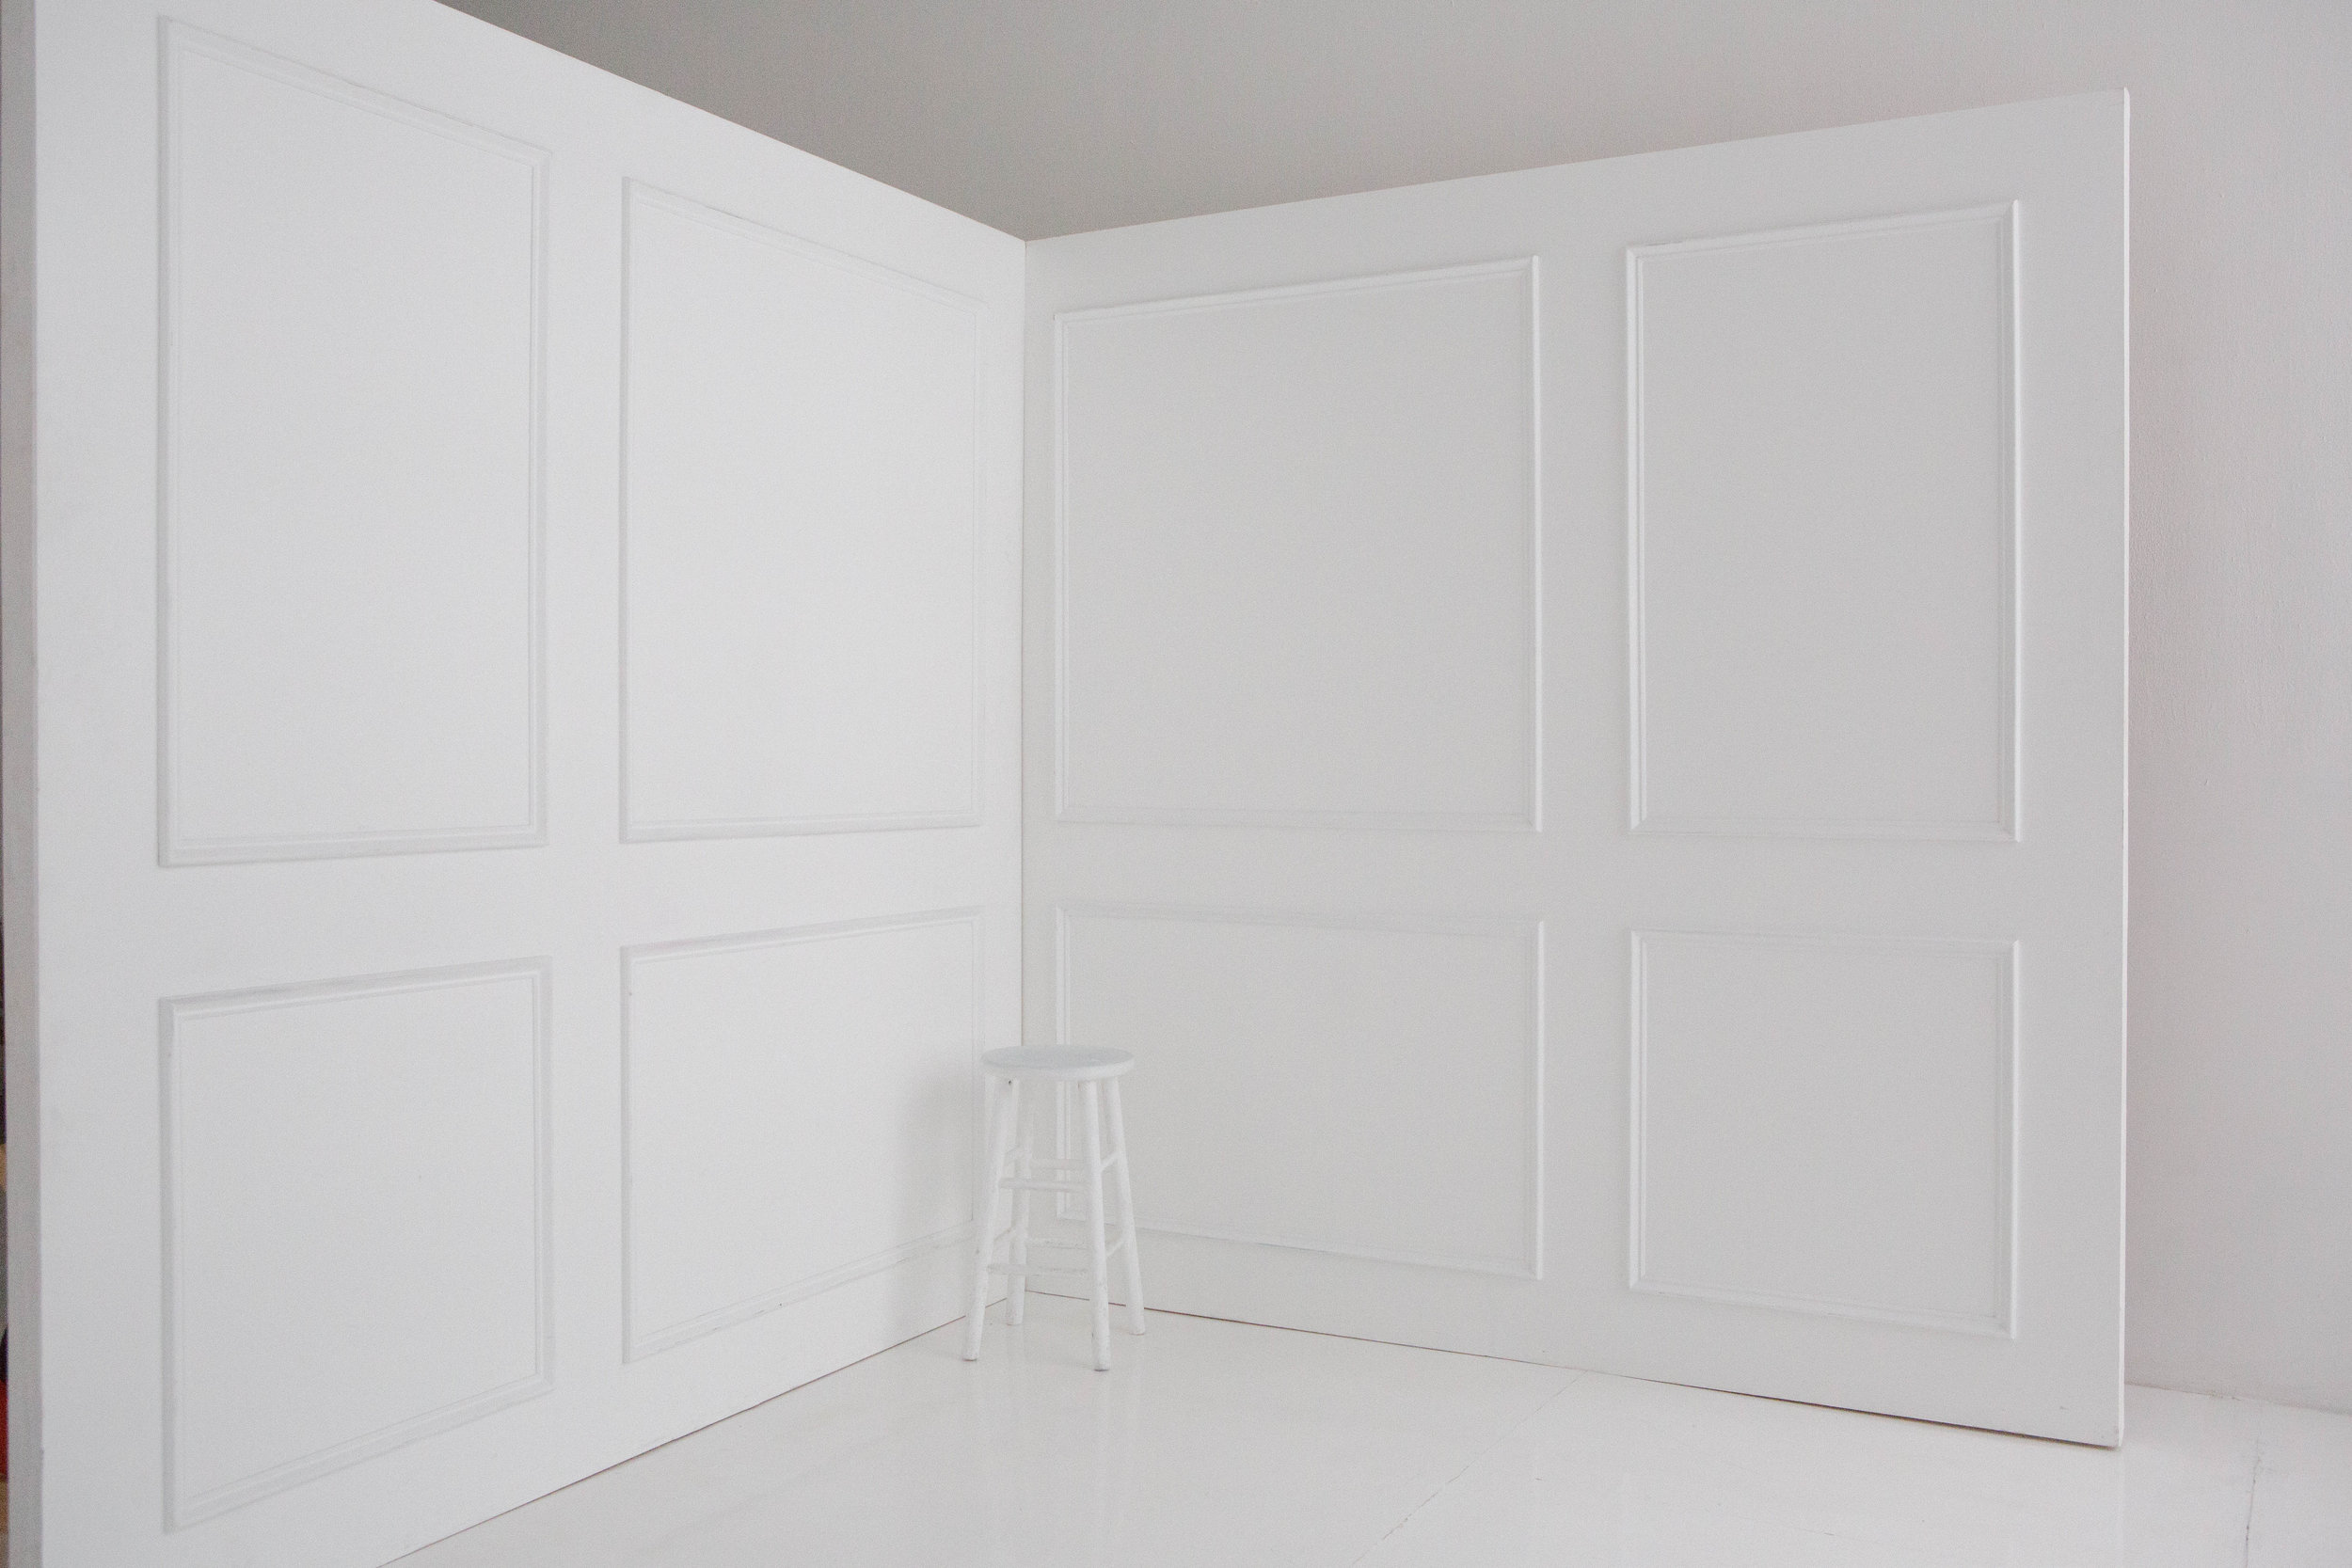 Two 8x8 flats with Molding A